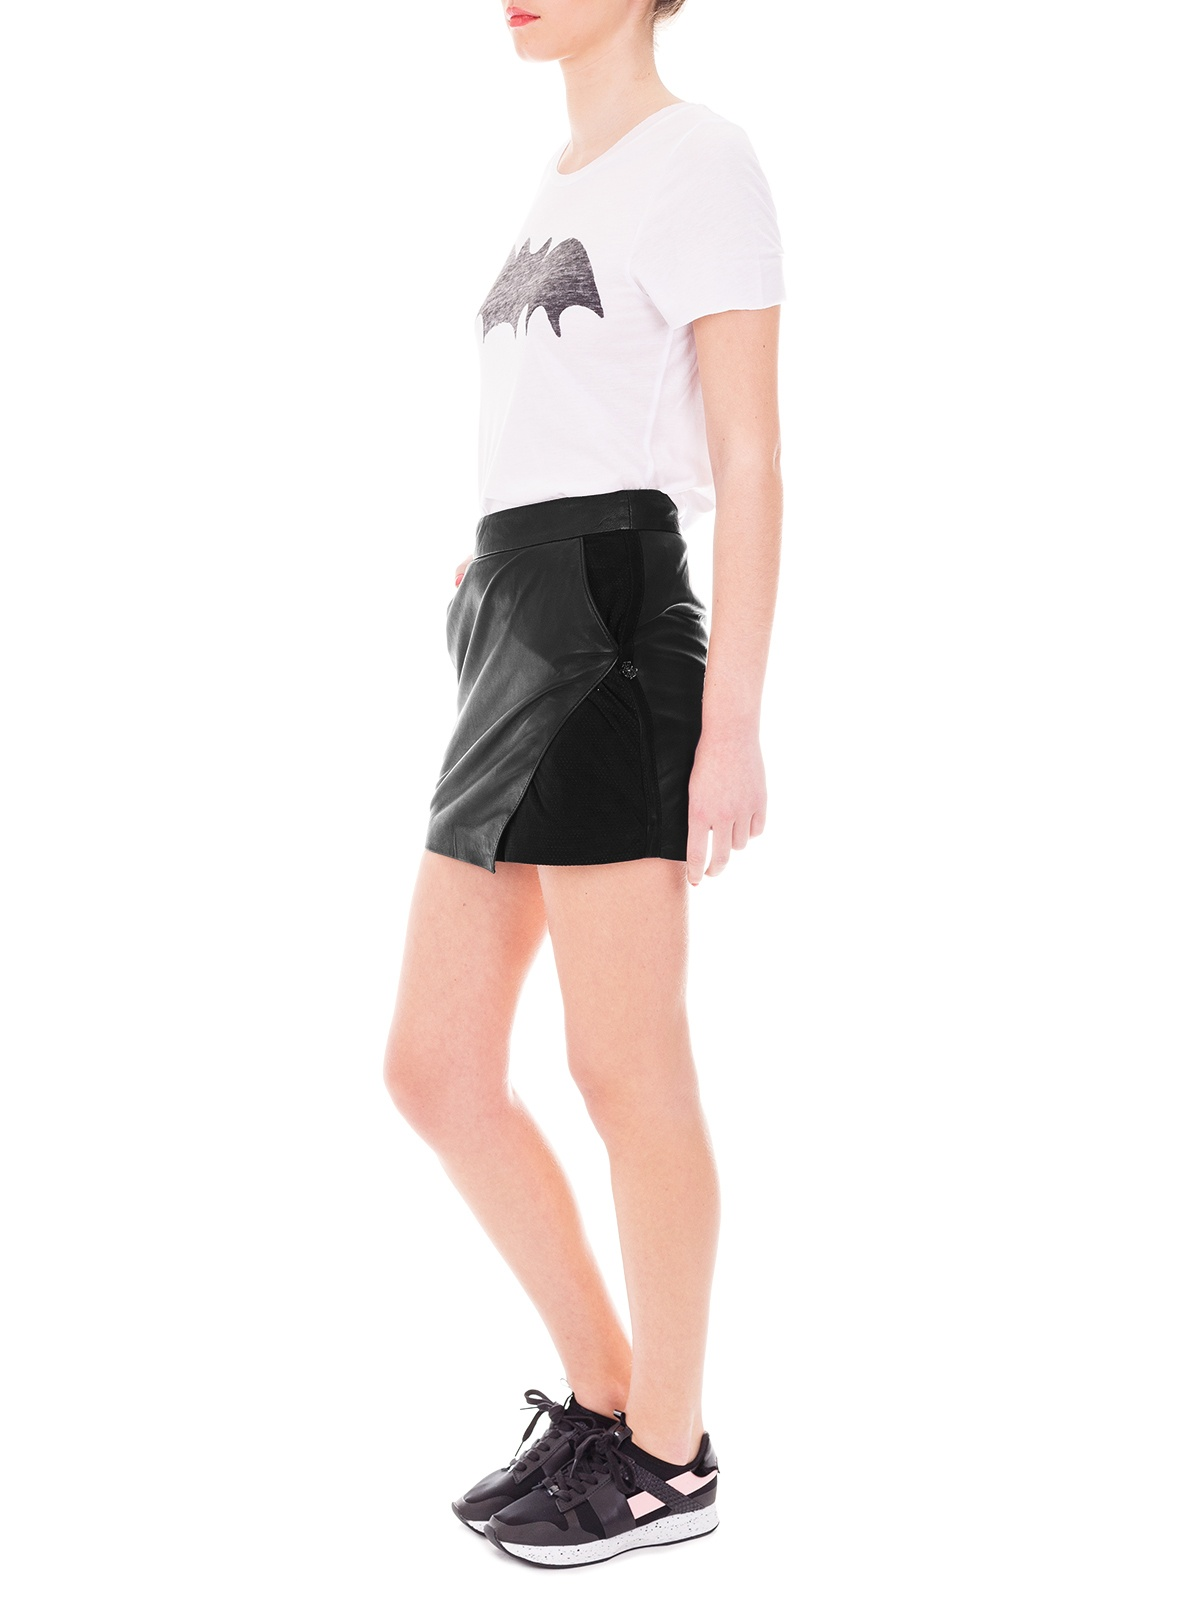 Maison Scotch | Black Leather Mini Envelope Skirt | GIRISSIMA.COM